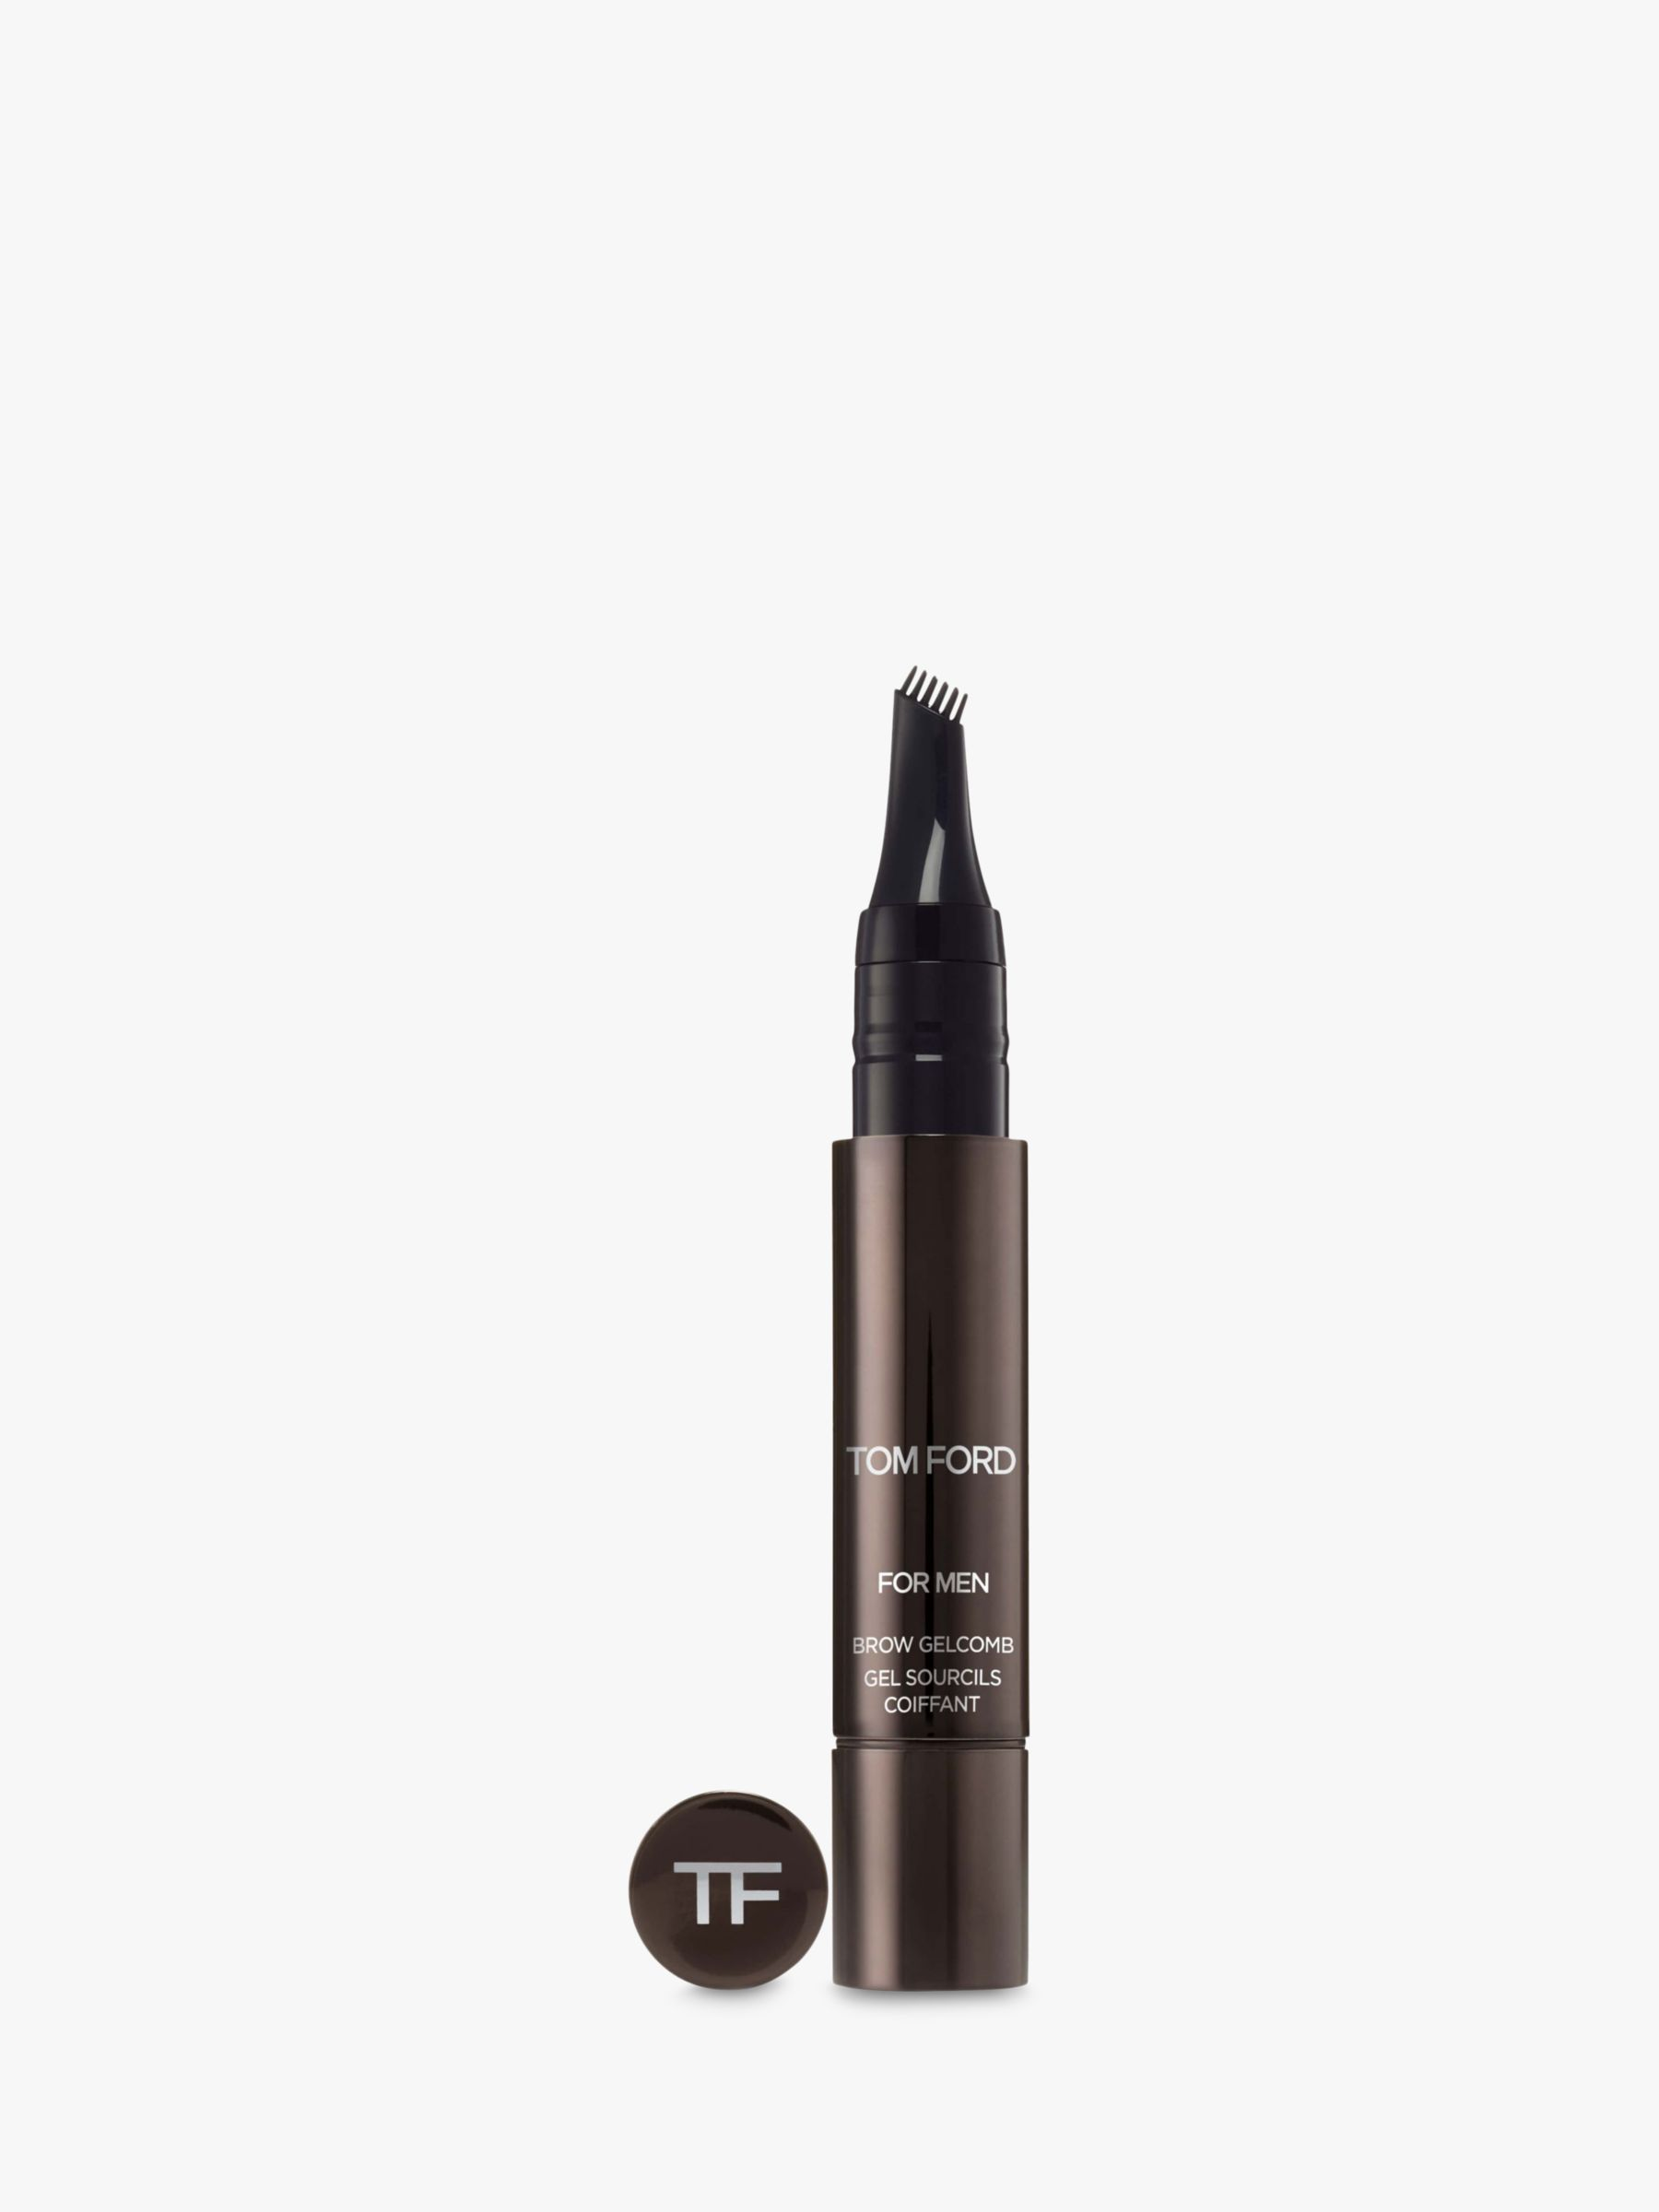 Tom Ford TOM FORD For Men Brow Gel Comb, 3.2ml